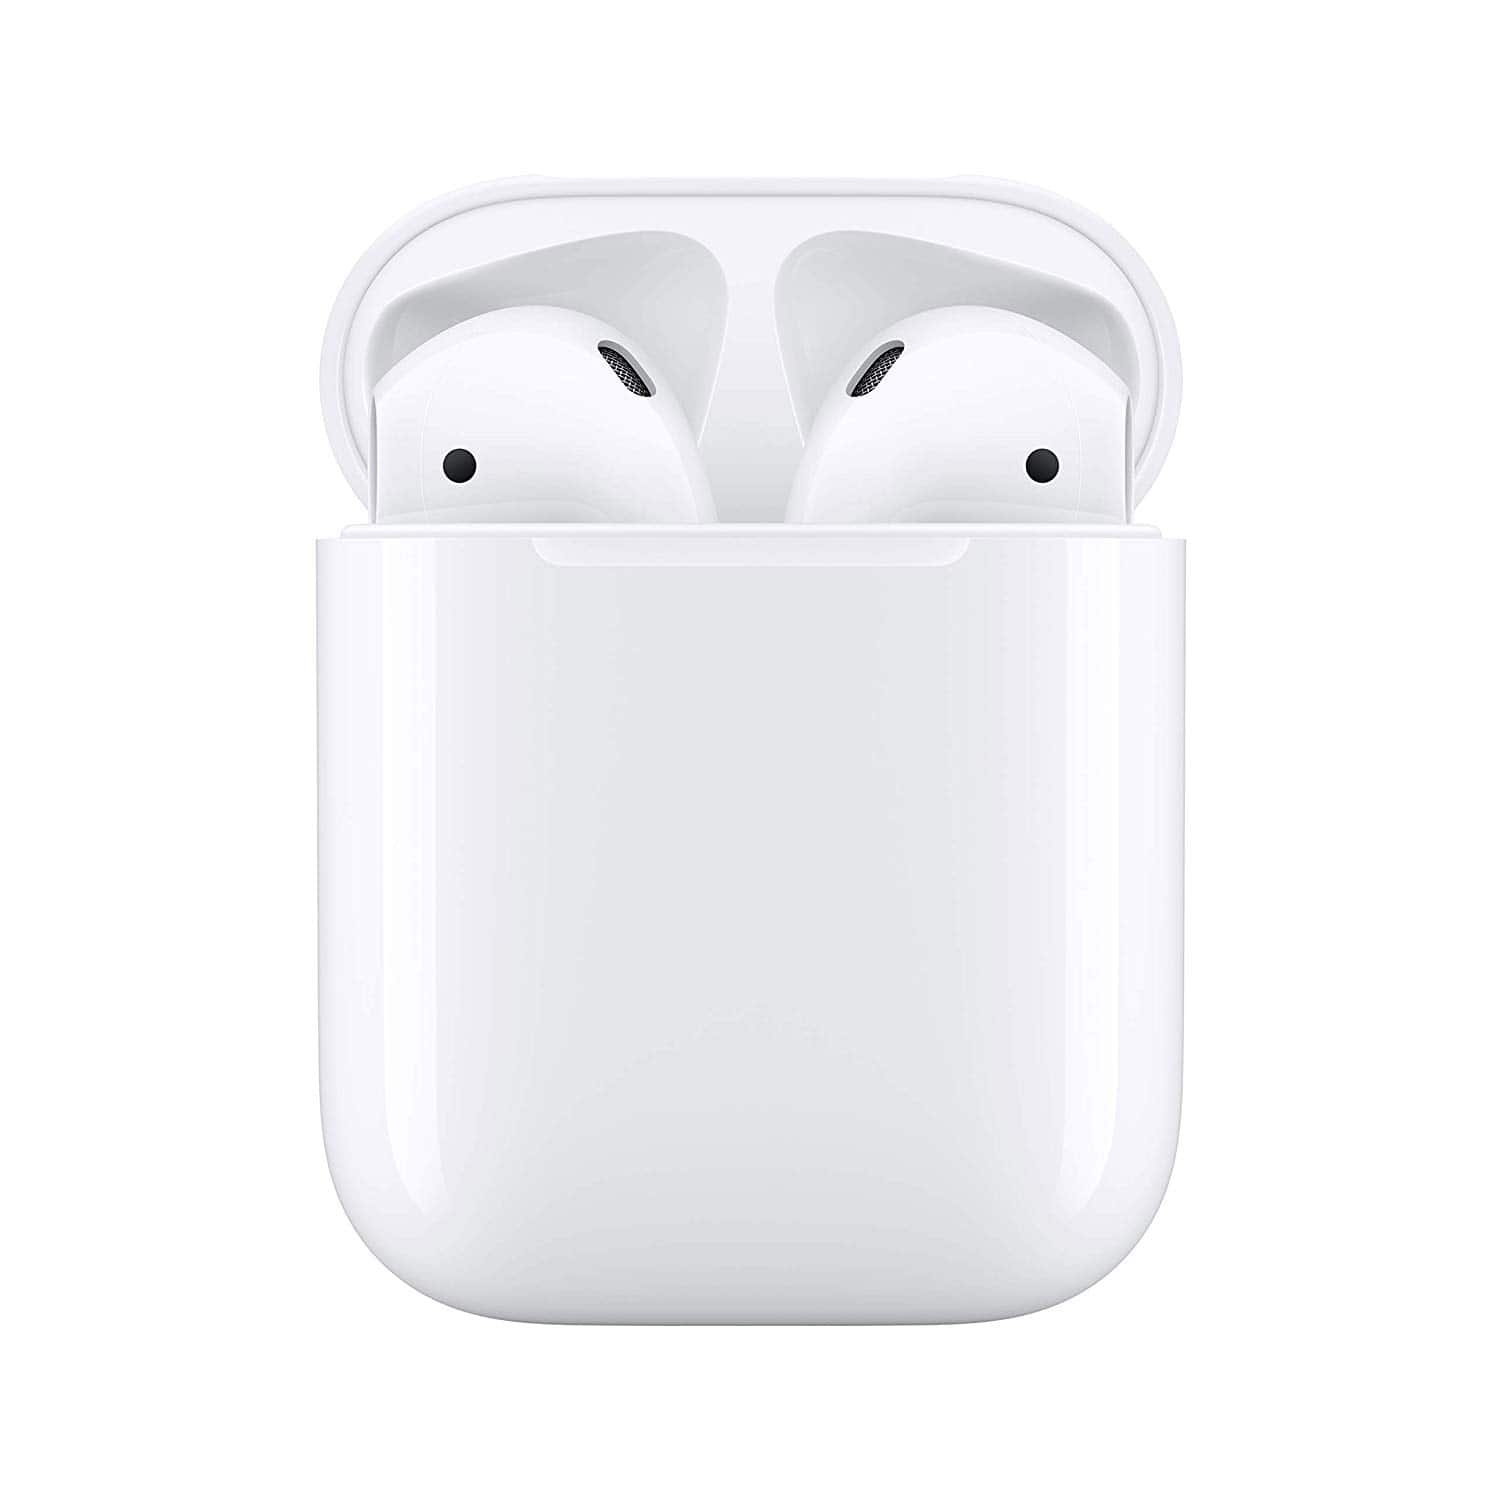 Apple AirPods with Charging Case (Latest Model): $129, Apple AirPods Pro: $234.98